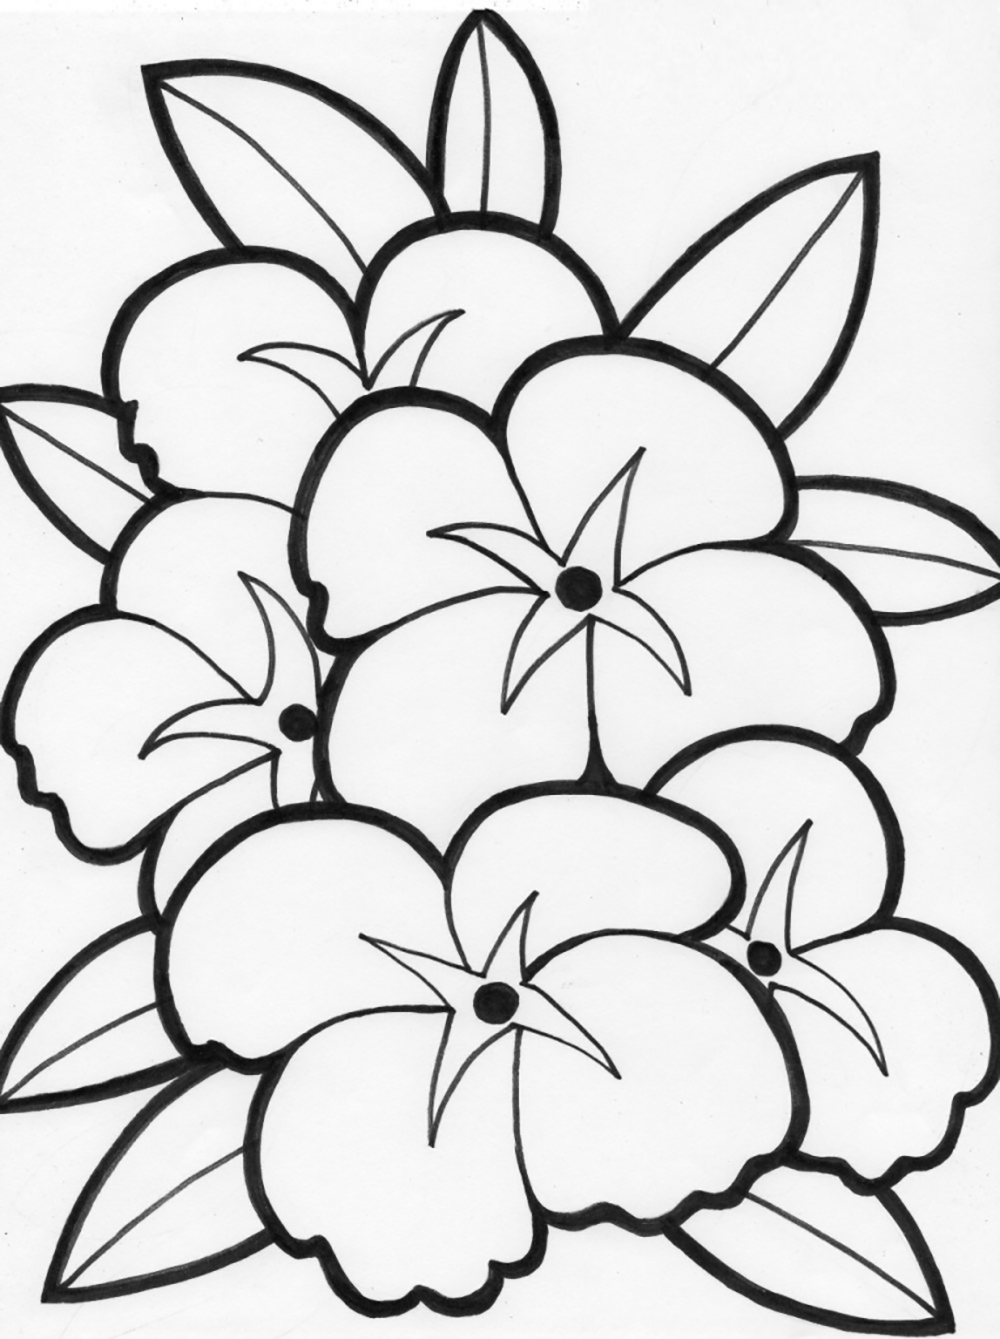 beautiful flowers coloring pages colorful flower drawing at getdrawings free download coloring beautiful flowers pages